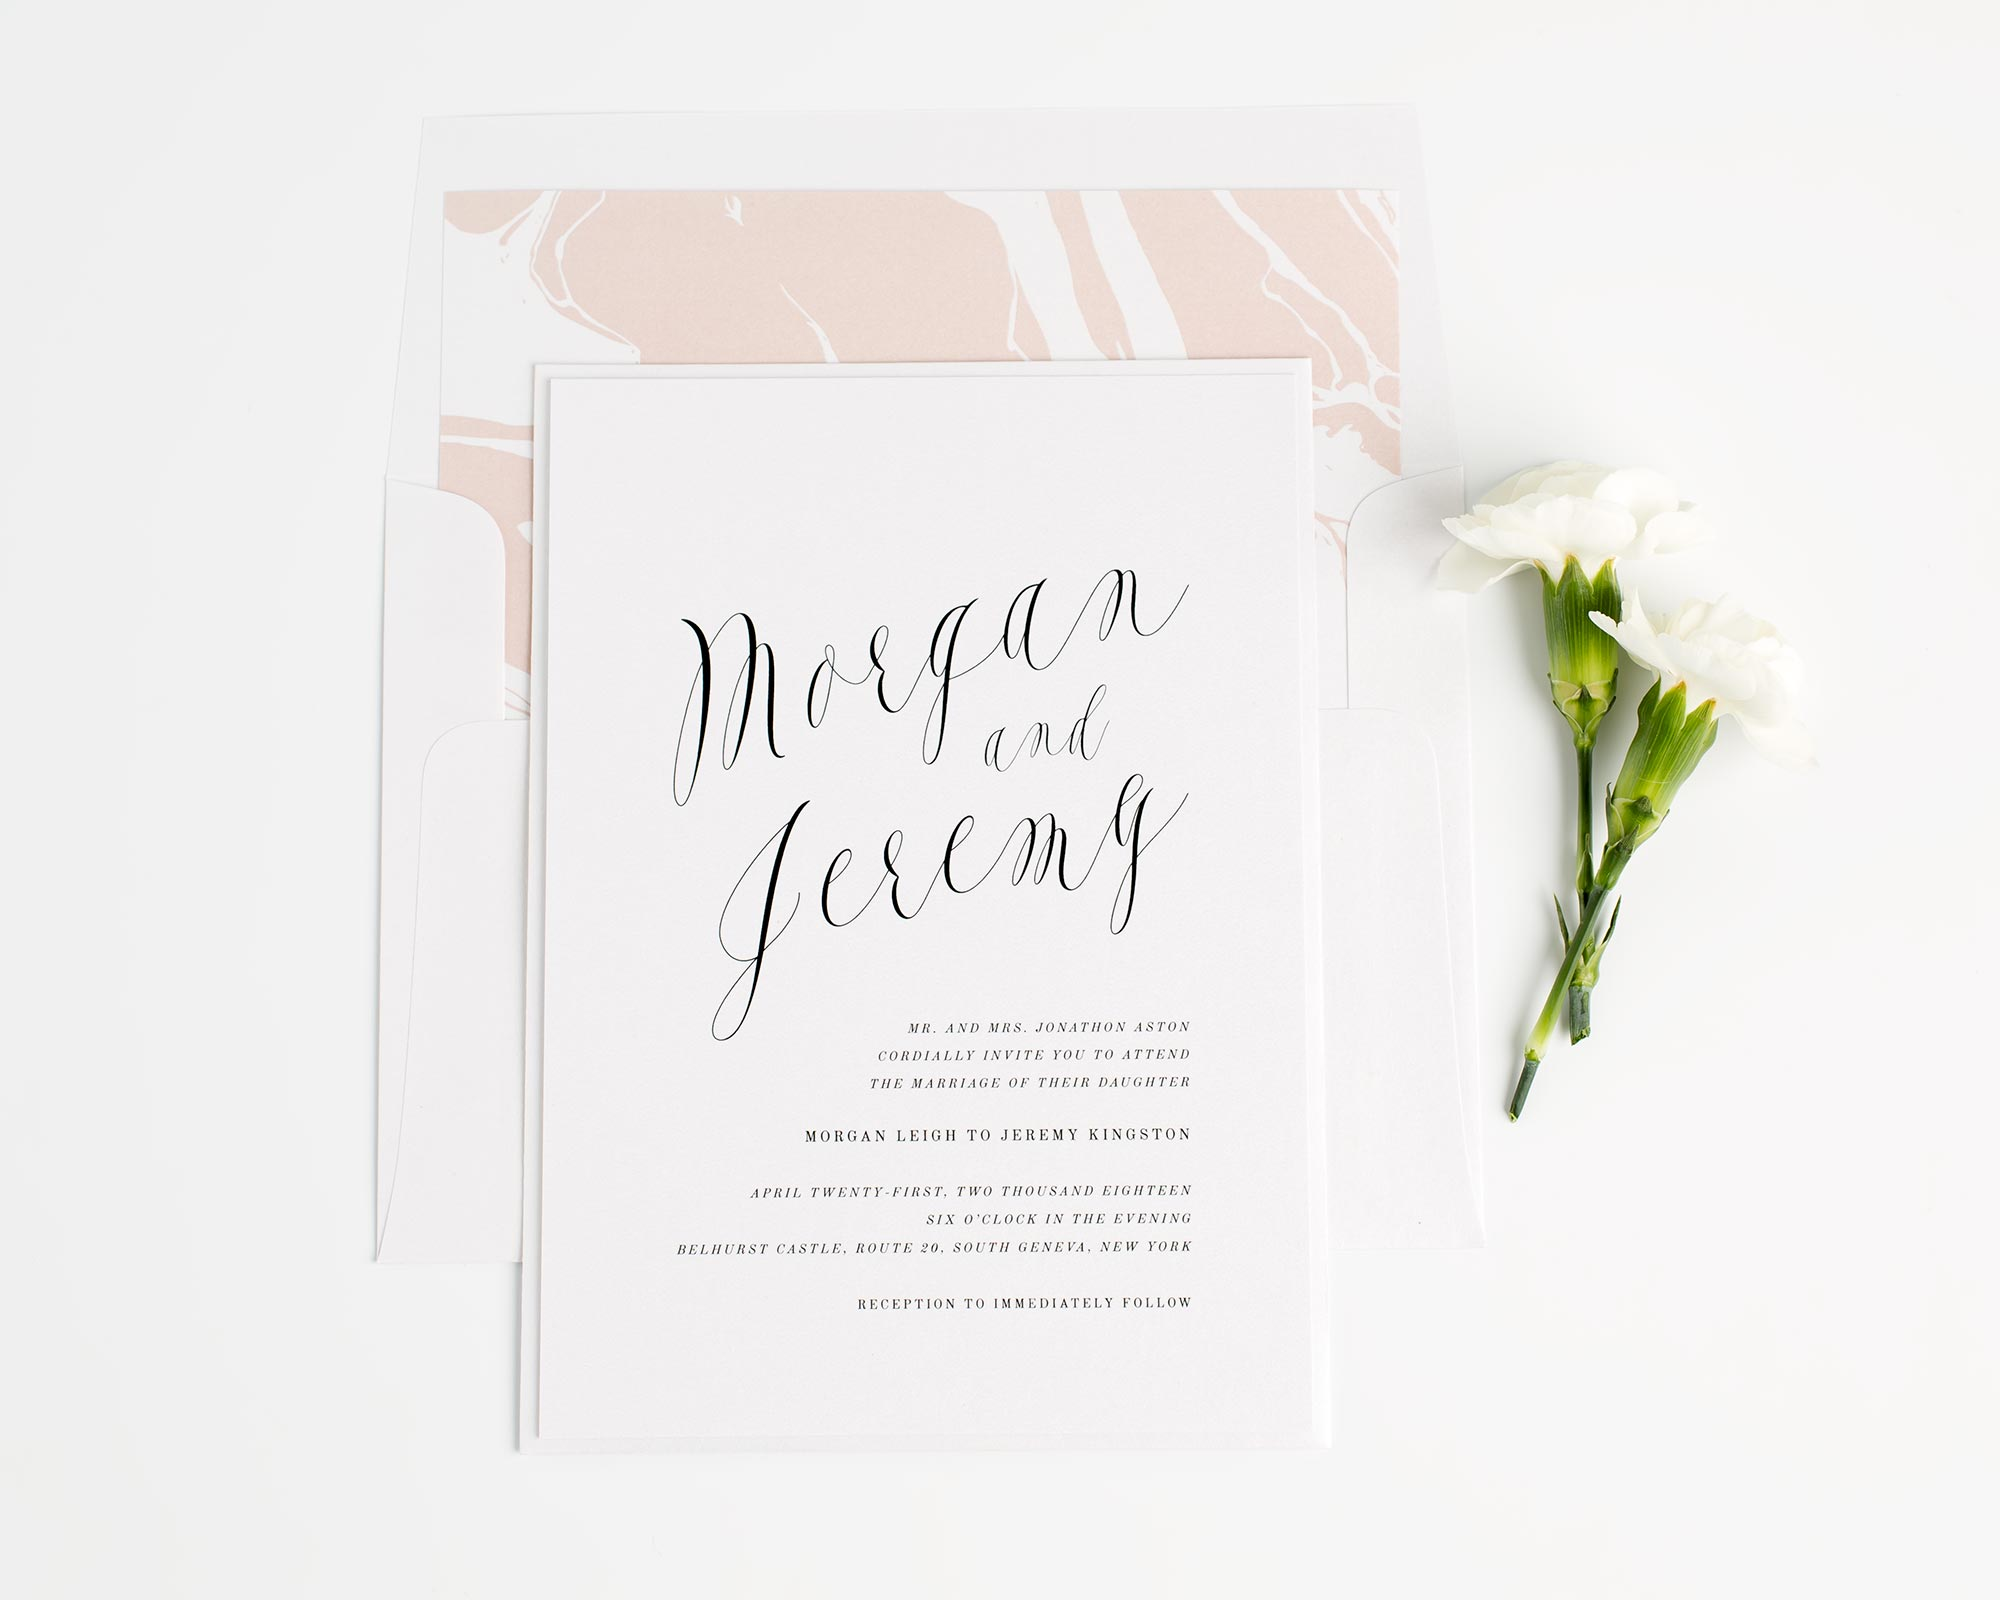 Marble Wedding Invitations in Rose Gold